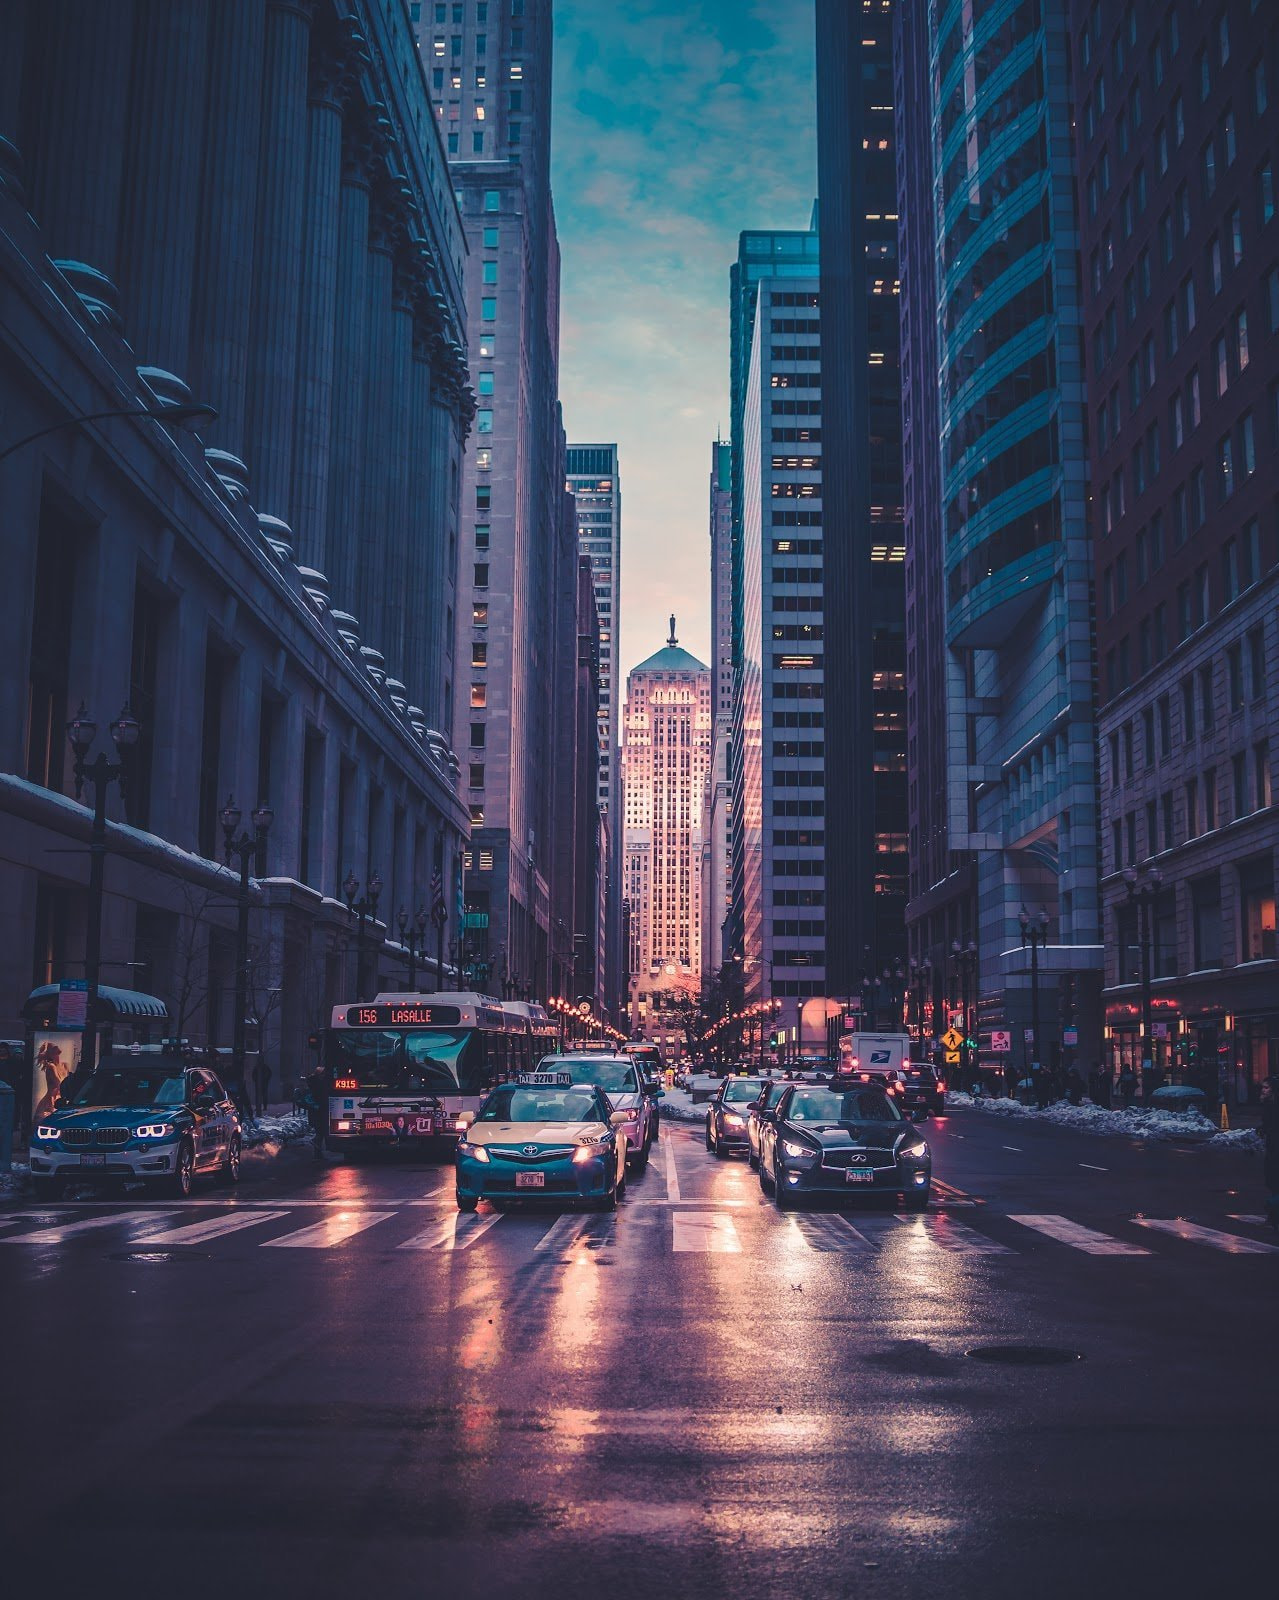 Buildings and a busy city street during the blue hour by Max Bender